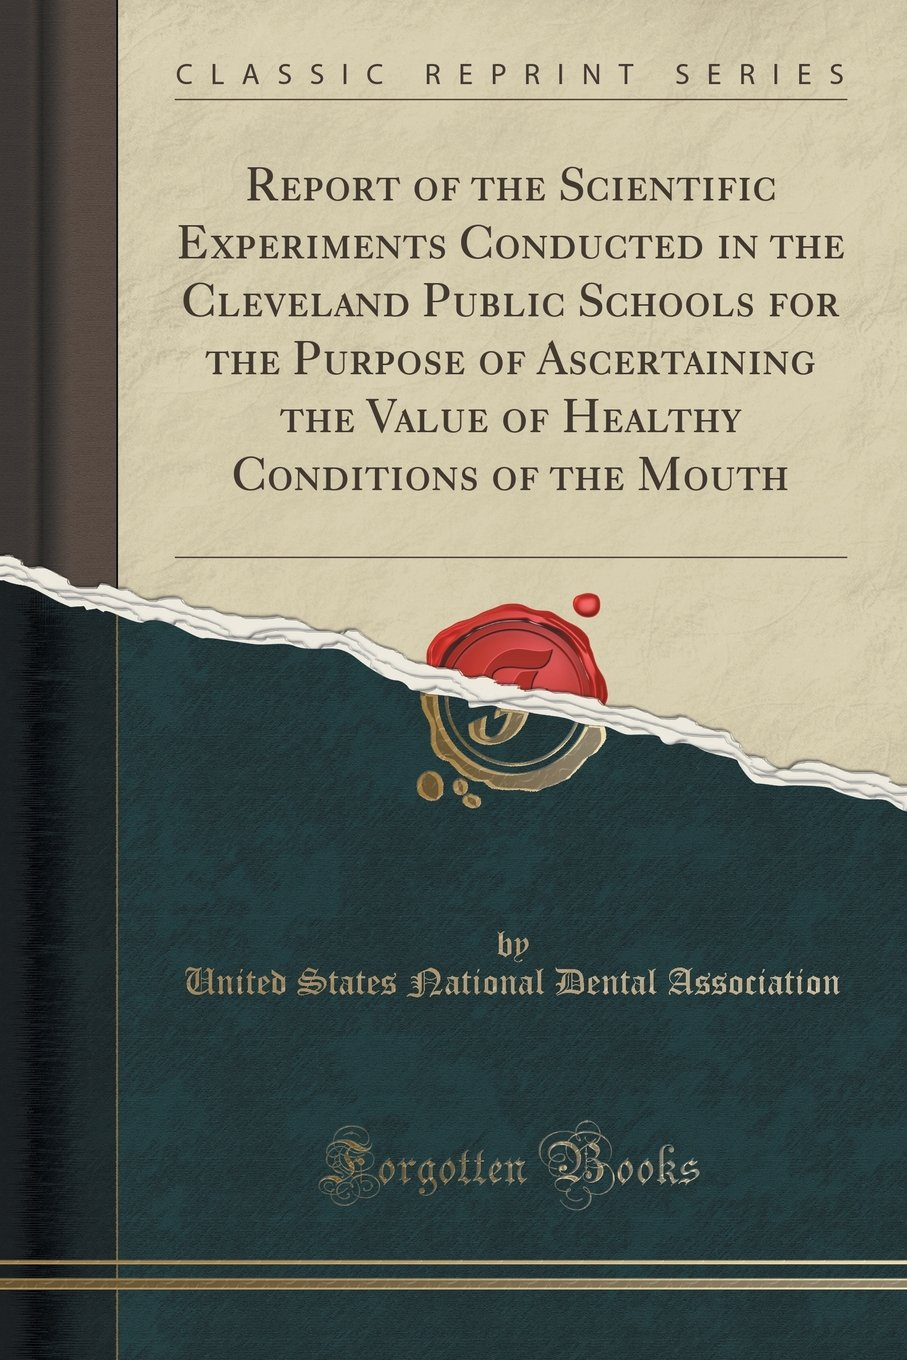 Report of the Scientific Experiments Conducted in the Cleveland Public Schools for the Purpose of Ascertaining the Value of Healthy Conditions of the Mouth (Classic Reprint) pdf epub